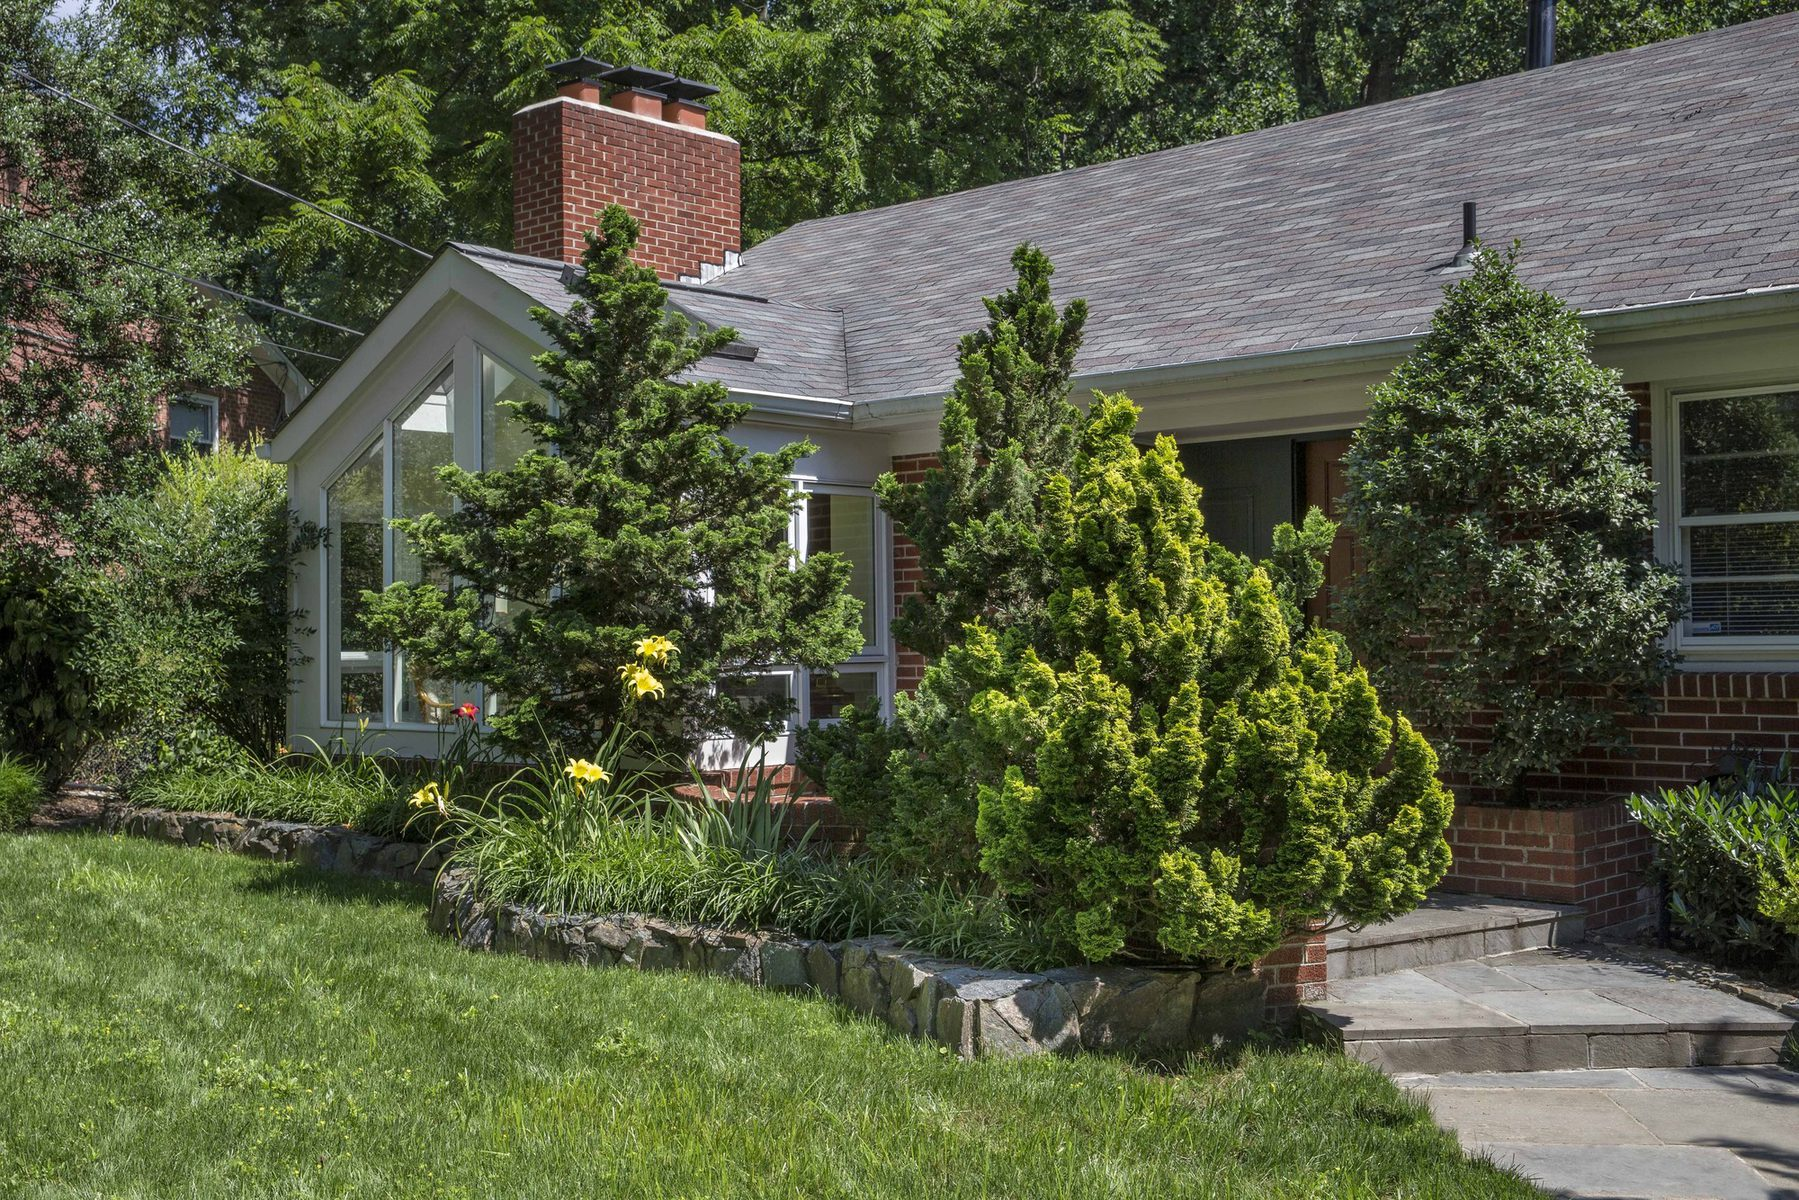 Single Family Home for Sale at 6148 Farver Road, Mclean 6148 Farver Rd McLean, Virginia 22101 United States